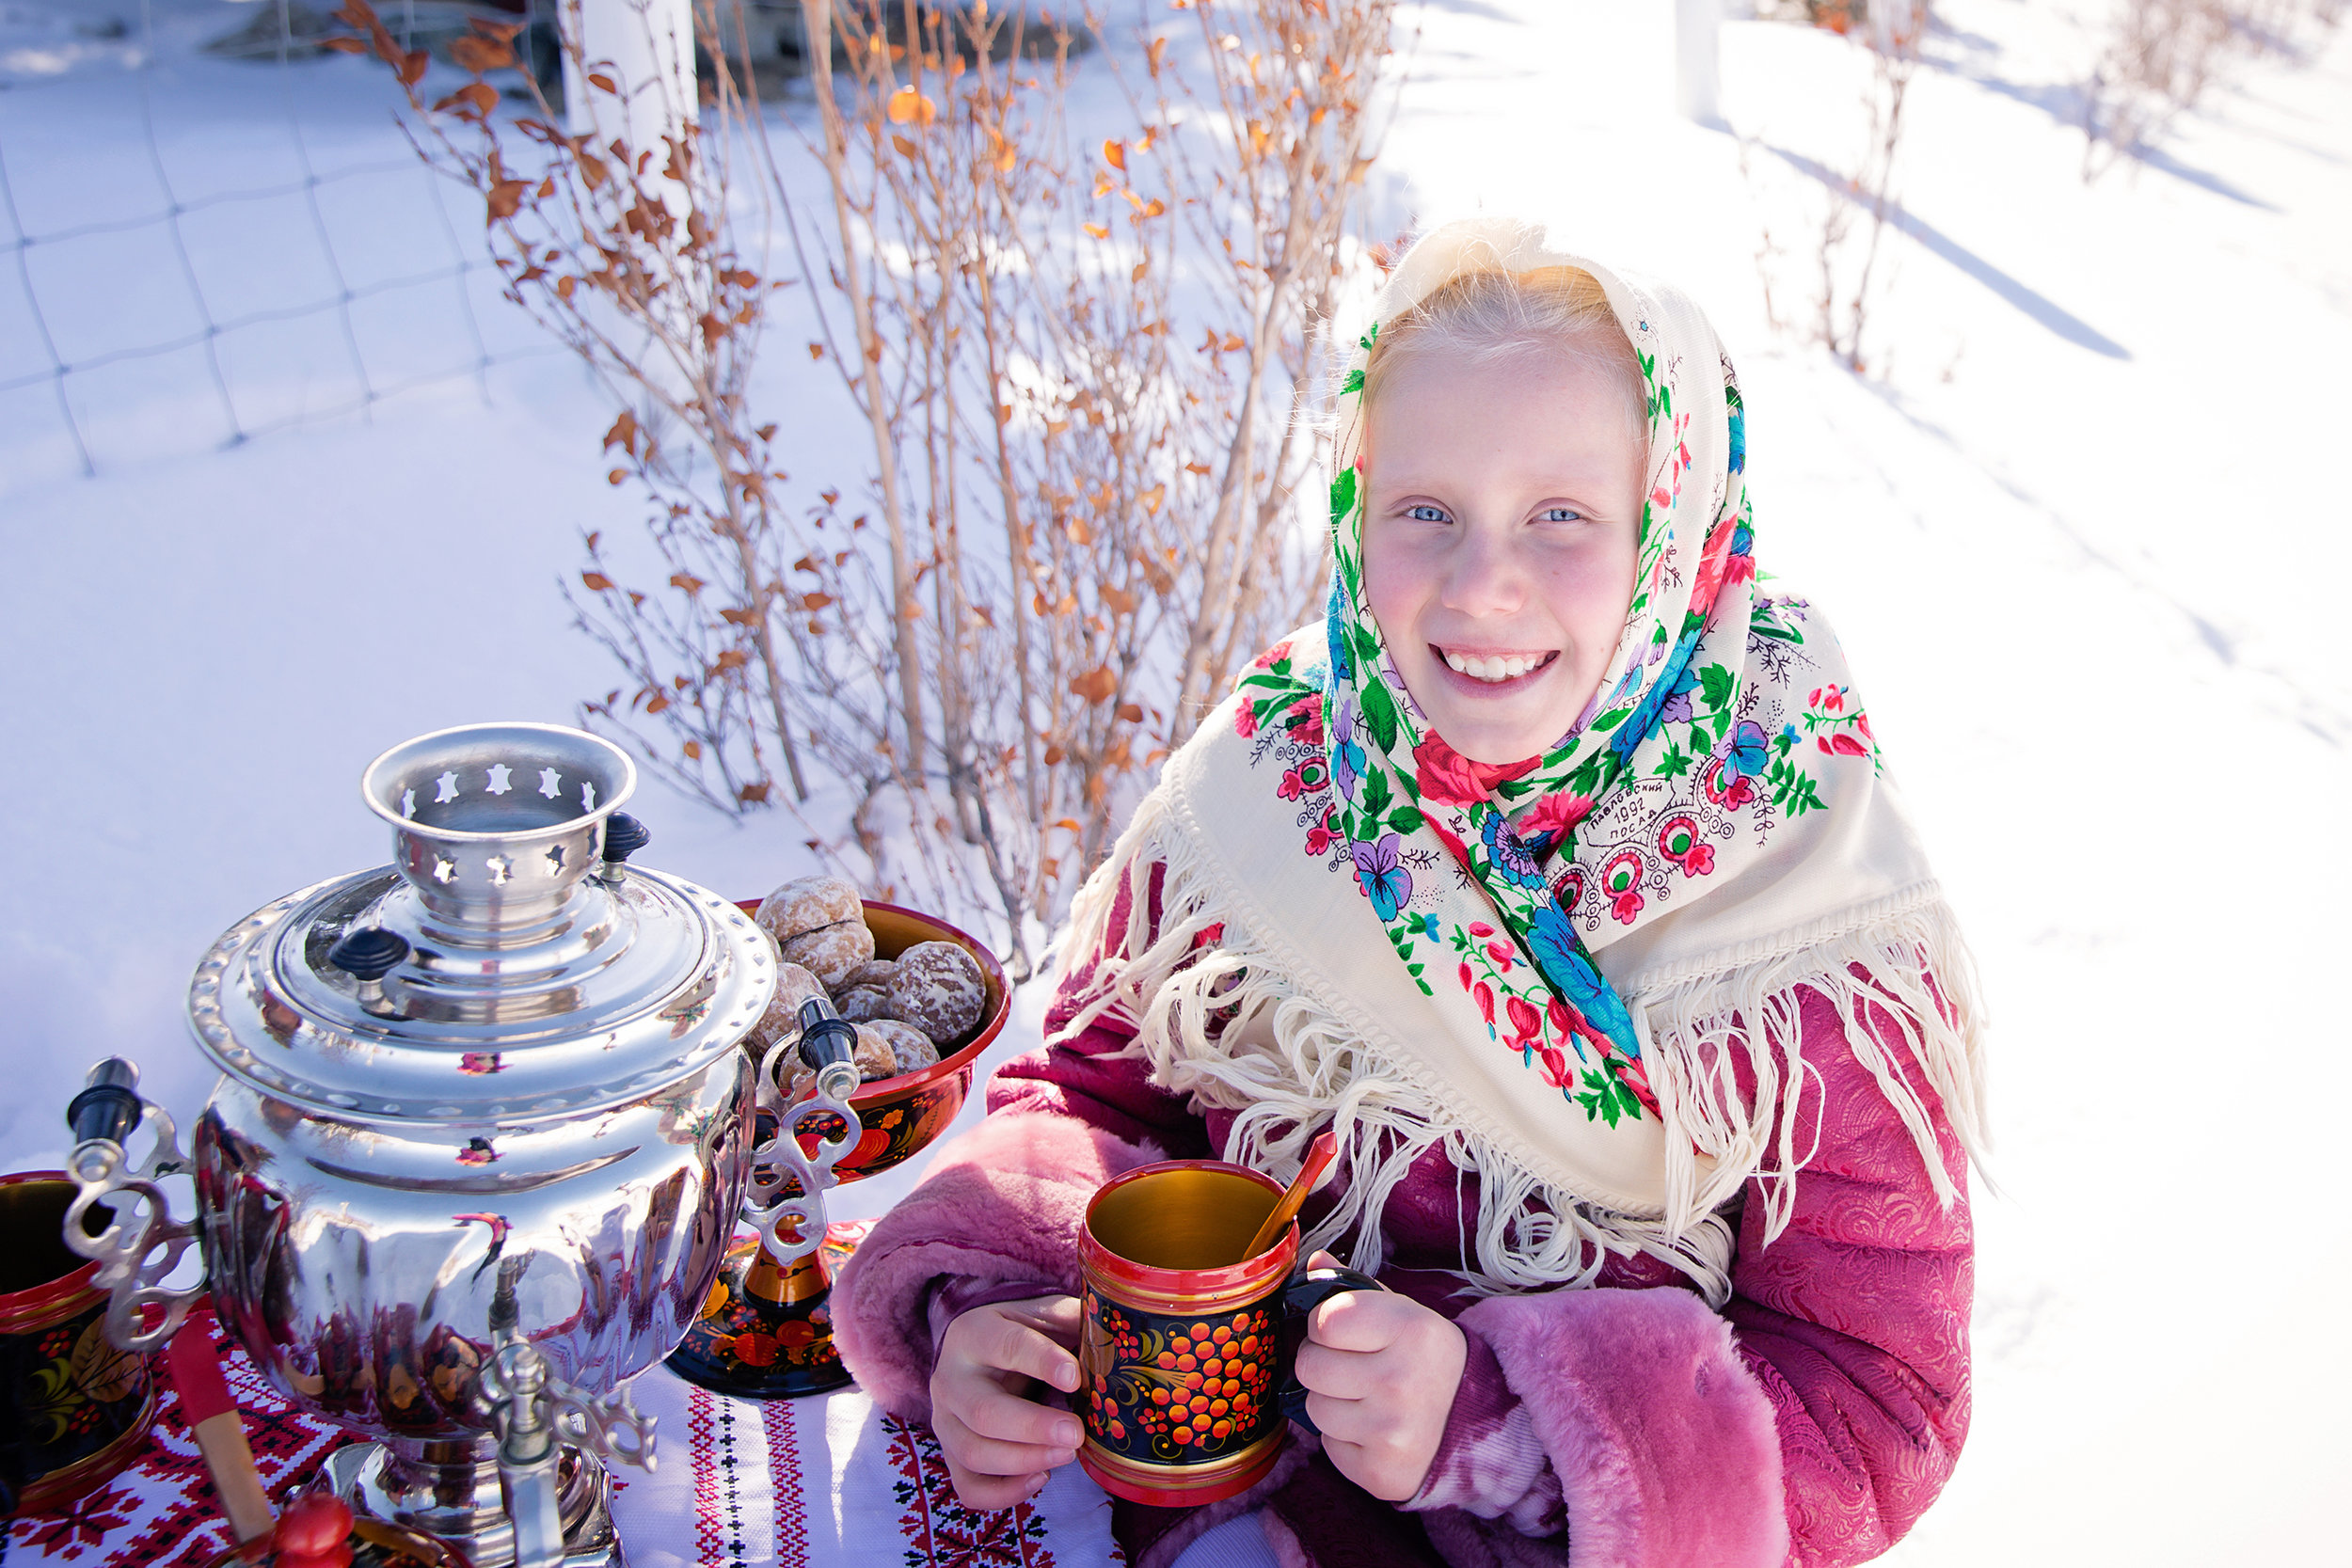 Russian inspired photoshoot. A girl is dressed in a traditional Russian clothes and drinking tea from a Samovar and Russian traditional dishes. Russian Calgary Photographer - Milashka Photography